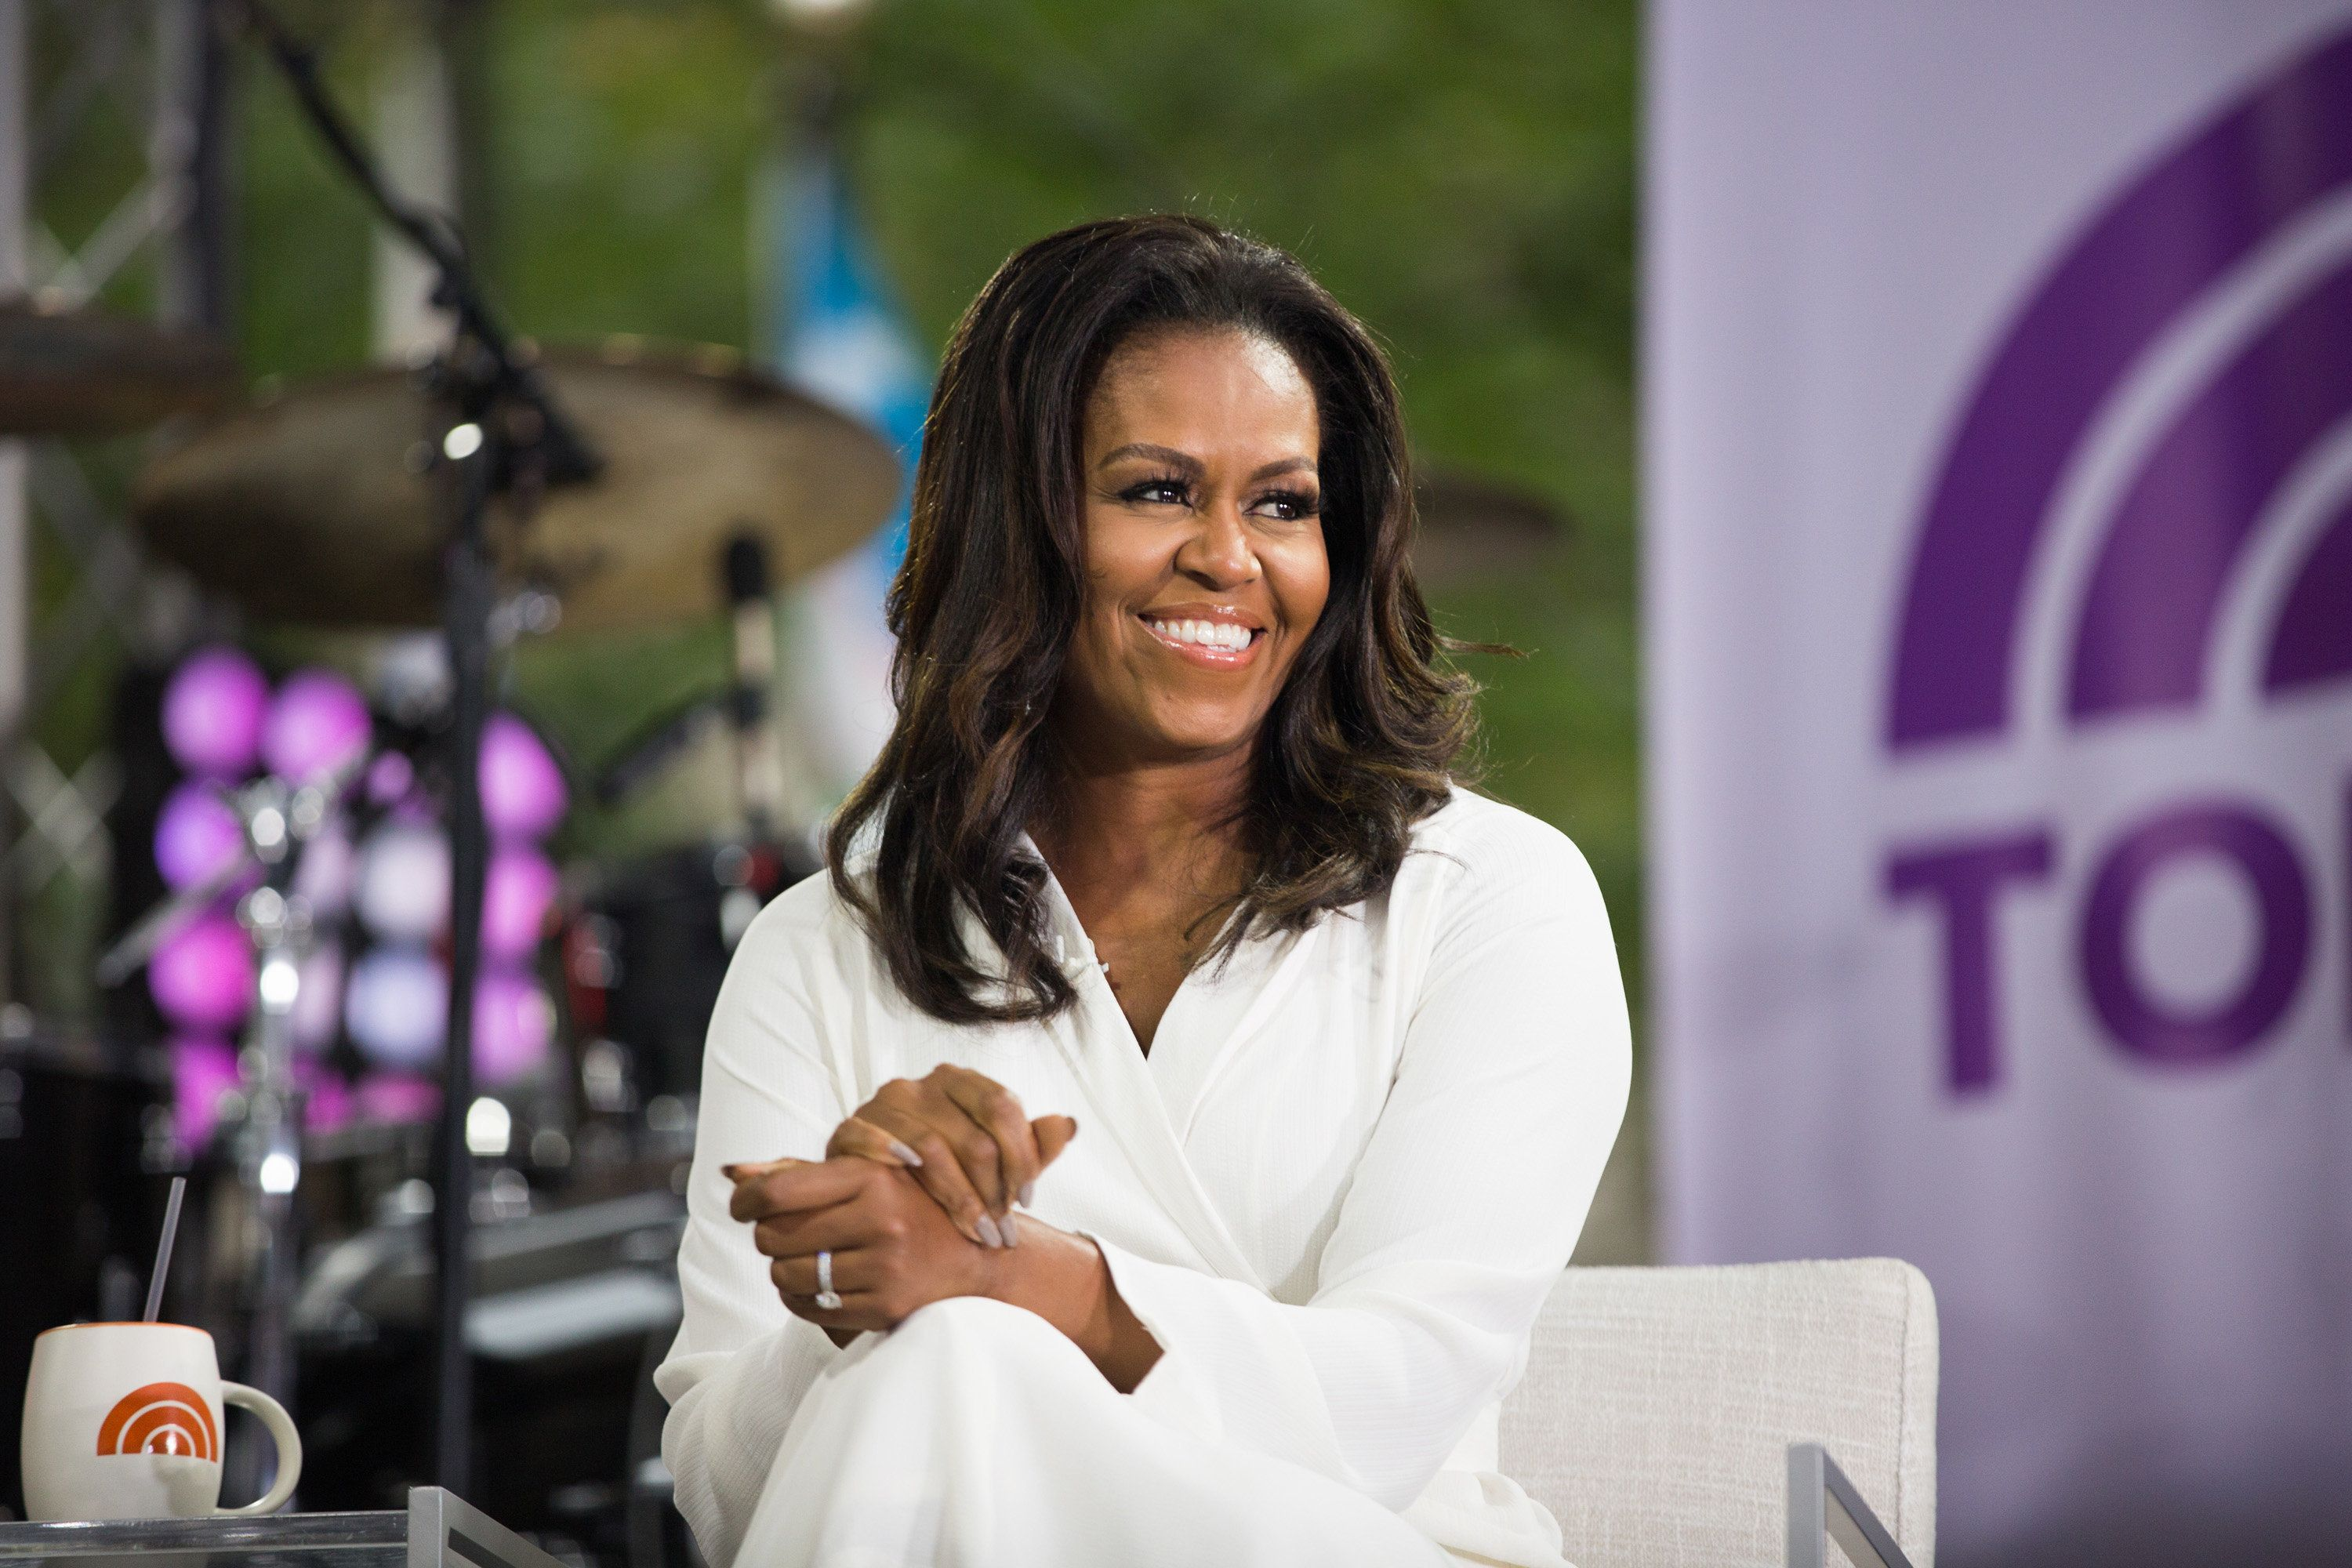 TODAY -- Pictured: Michelle Obama on Thursday, October 11, 2018 -- (Photo by: Nathan Congleton/NBC/NBCU Photo Bank via Getty Images)